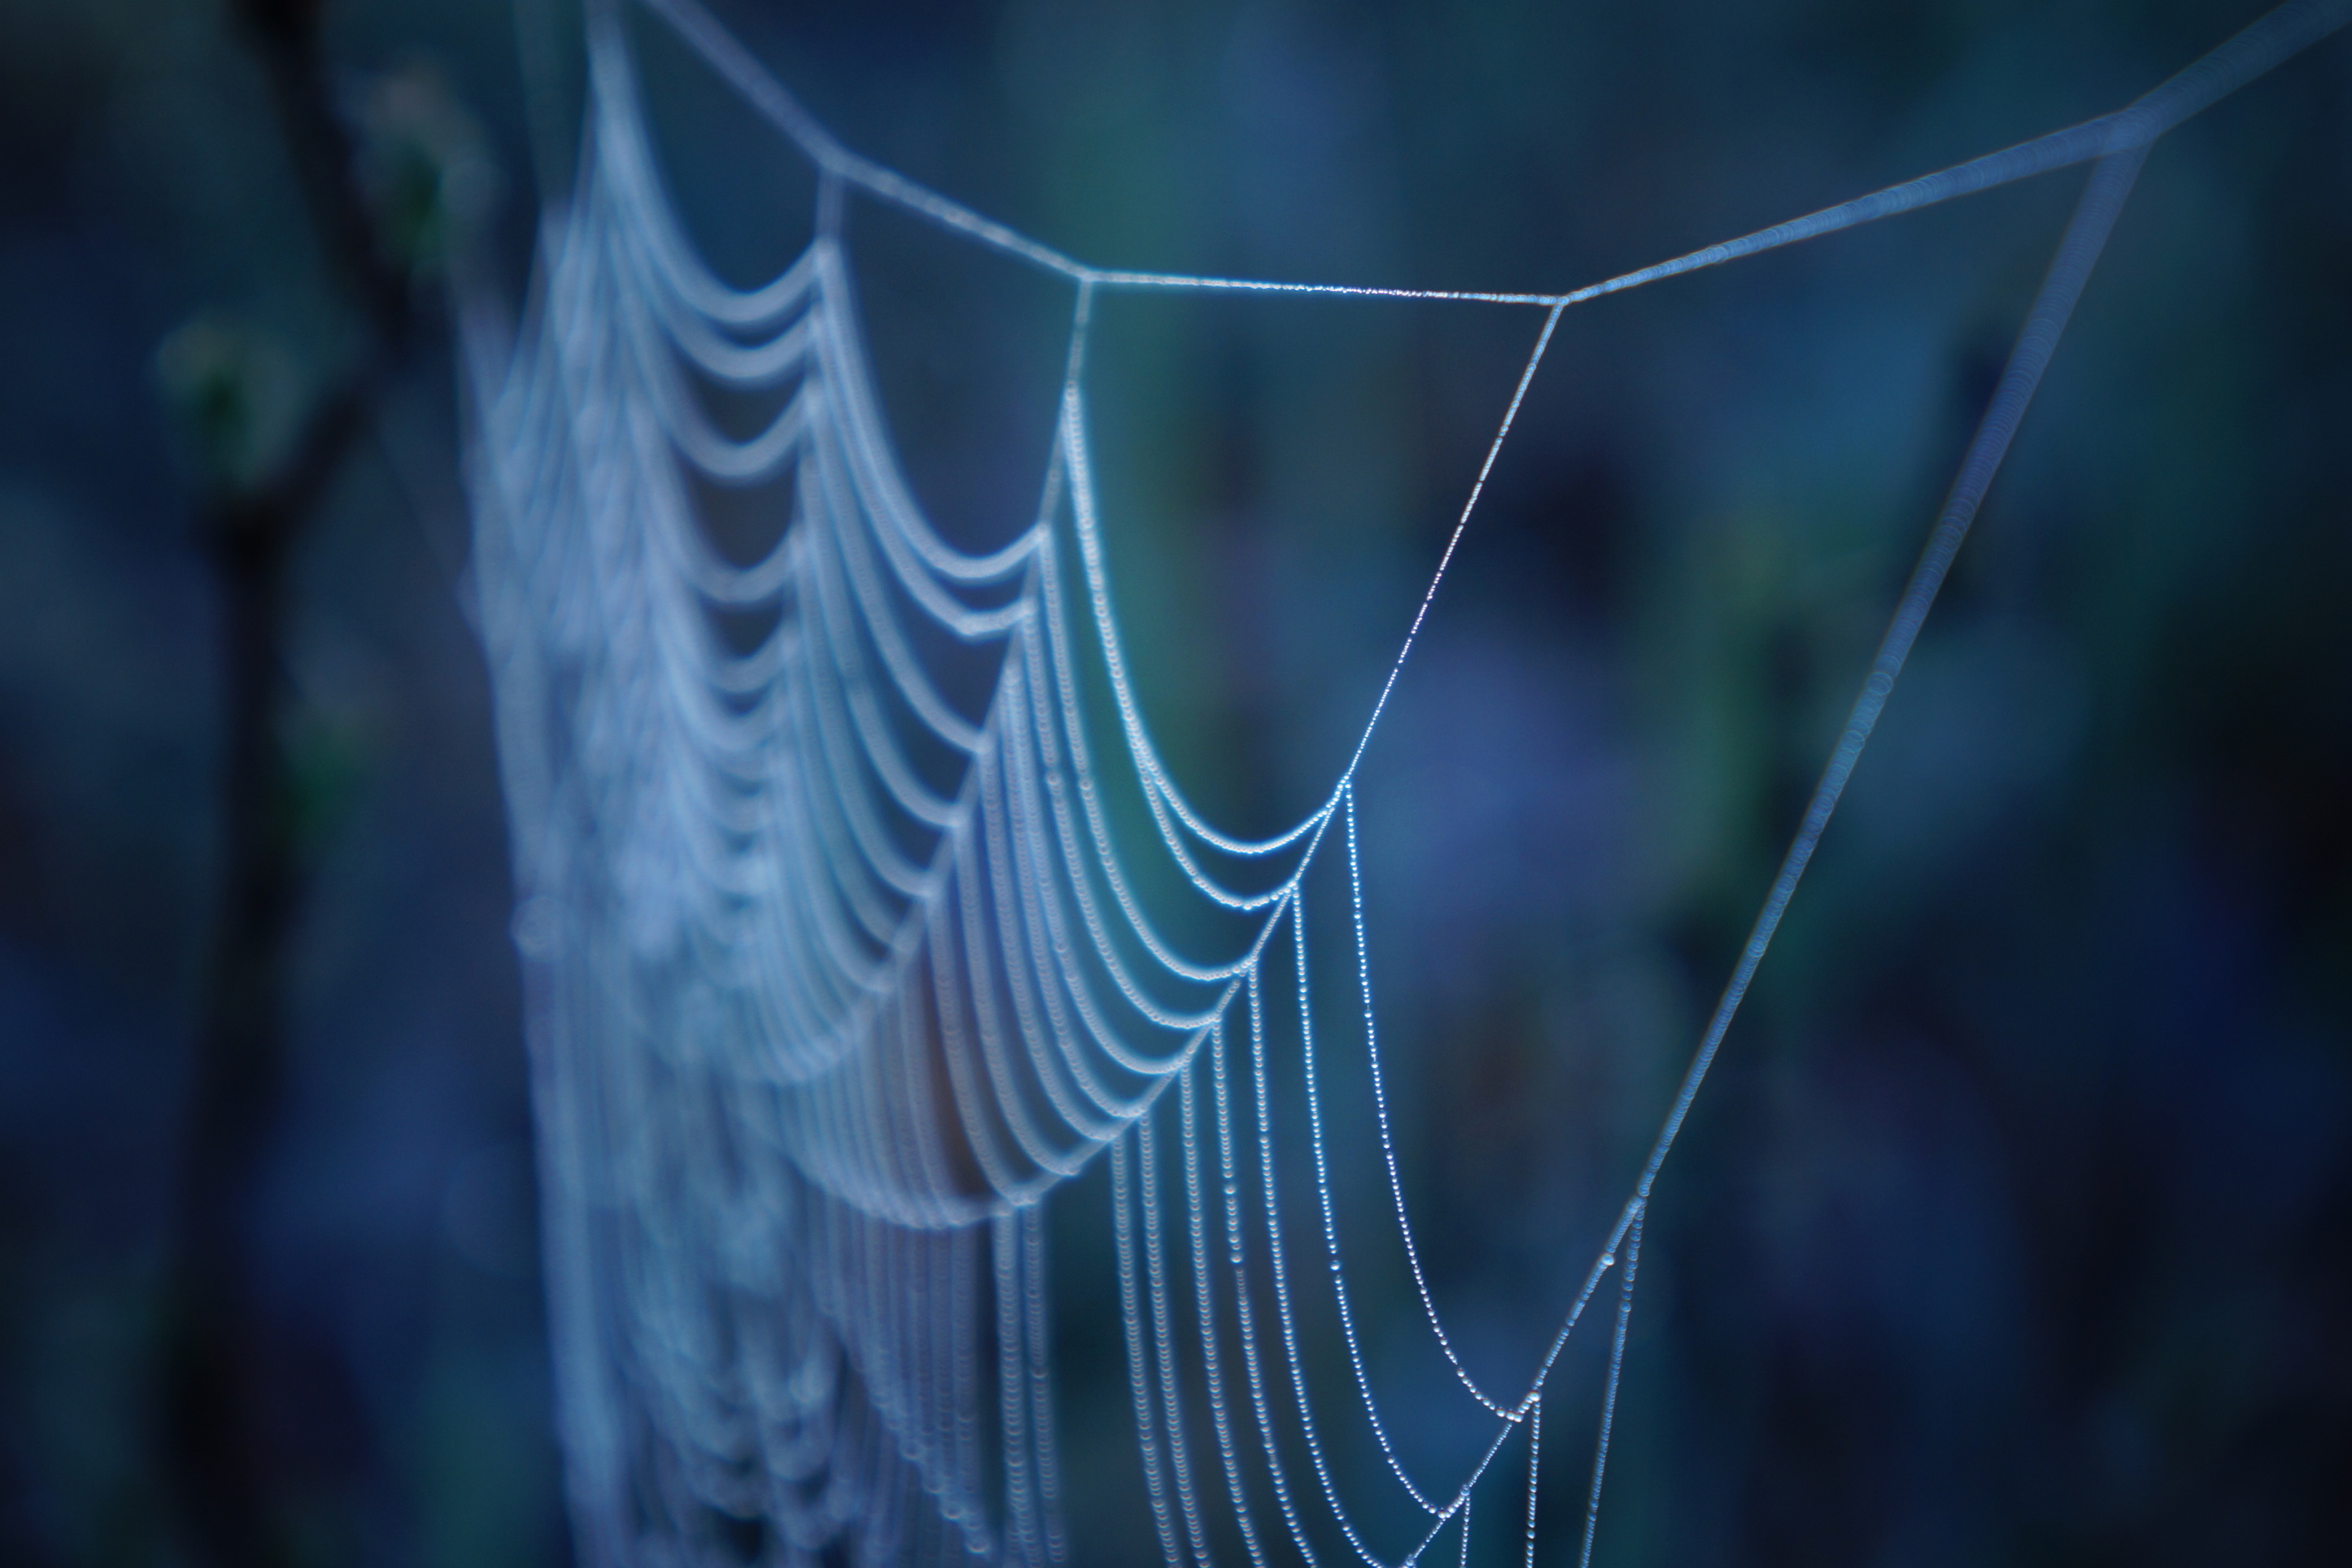 Close-up of a spider web. A UConn materials science team has developed an innovative composite for healing broken load-bearing bones based on a protein found in the silk fibers spun by spiders. (Getty Images)